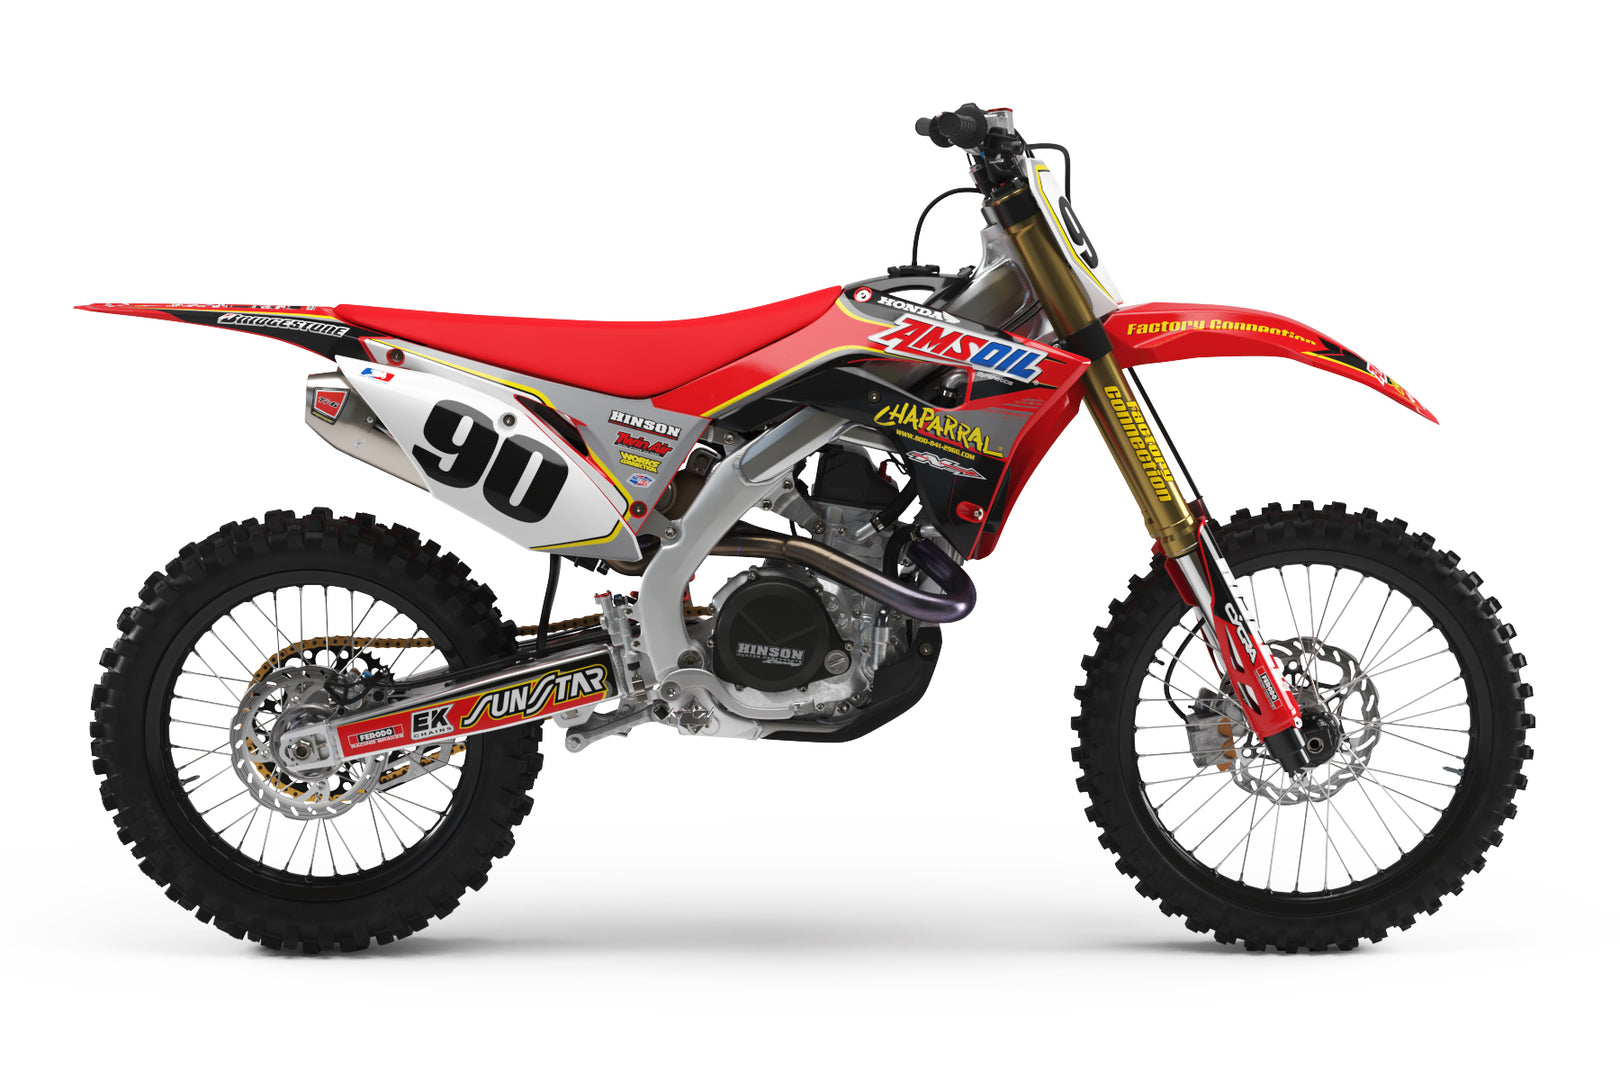 Ready-Made | AmsOil Factory Connection Graphic Kit Fits HONDA